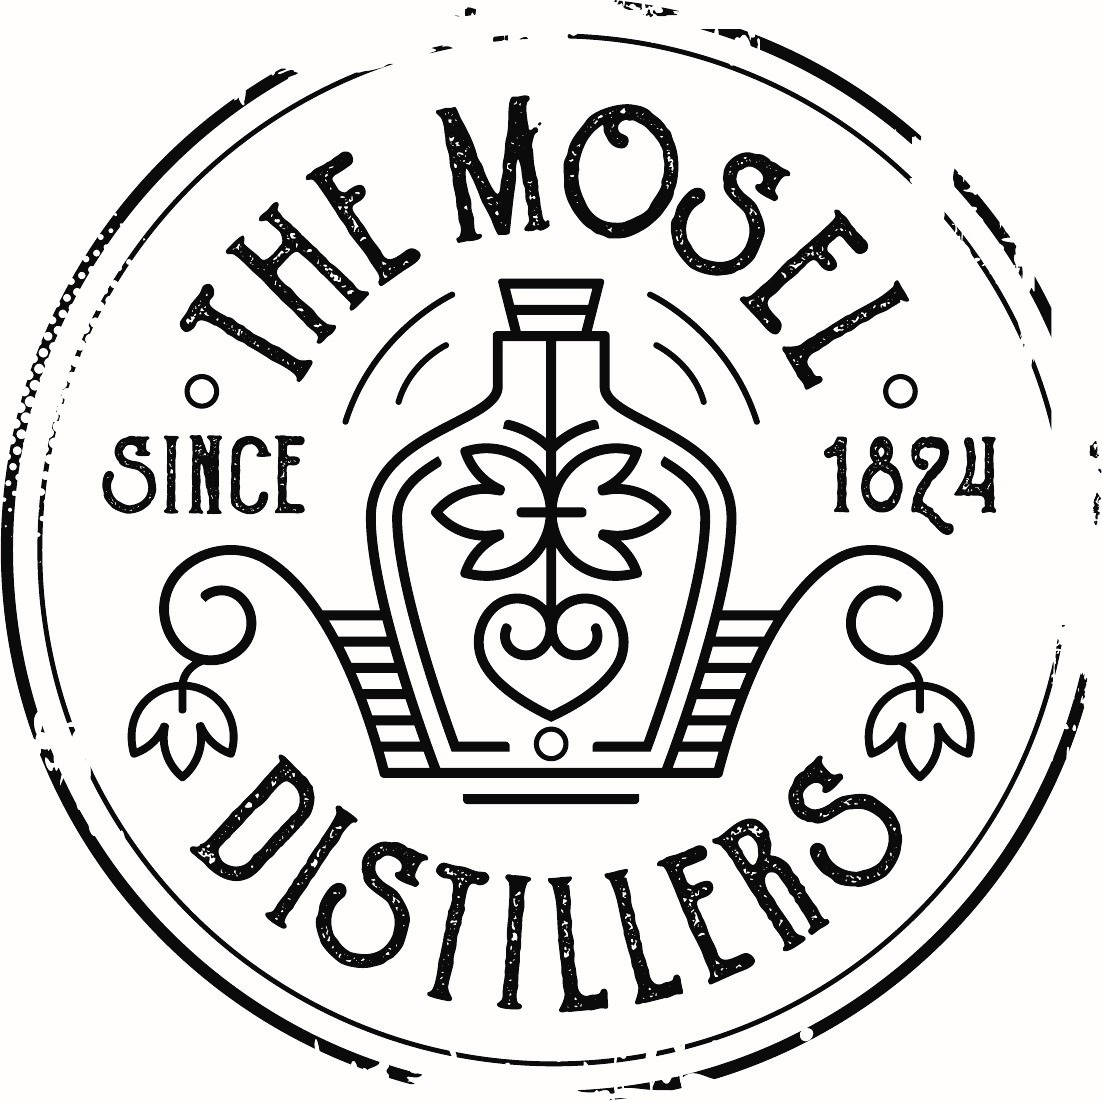 THE MOSEL DISTILLERS